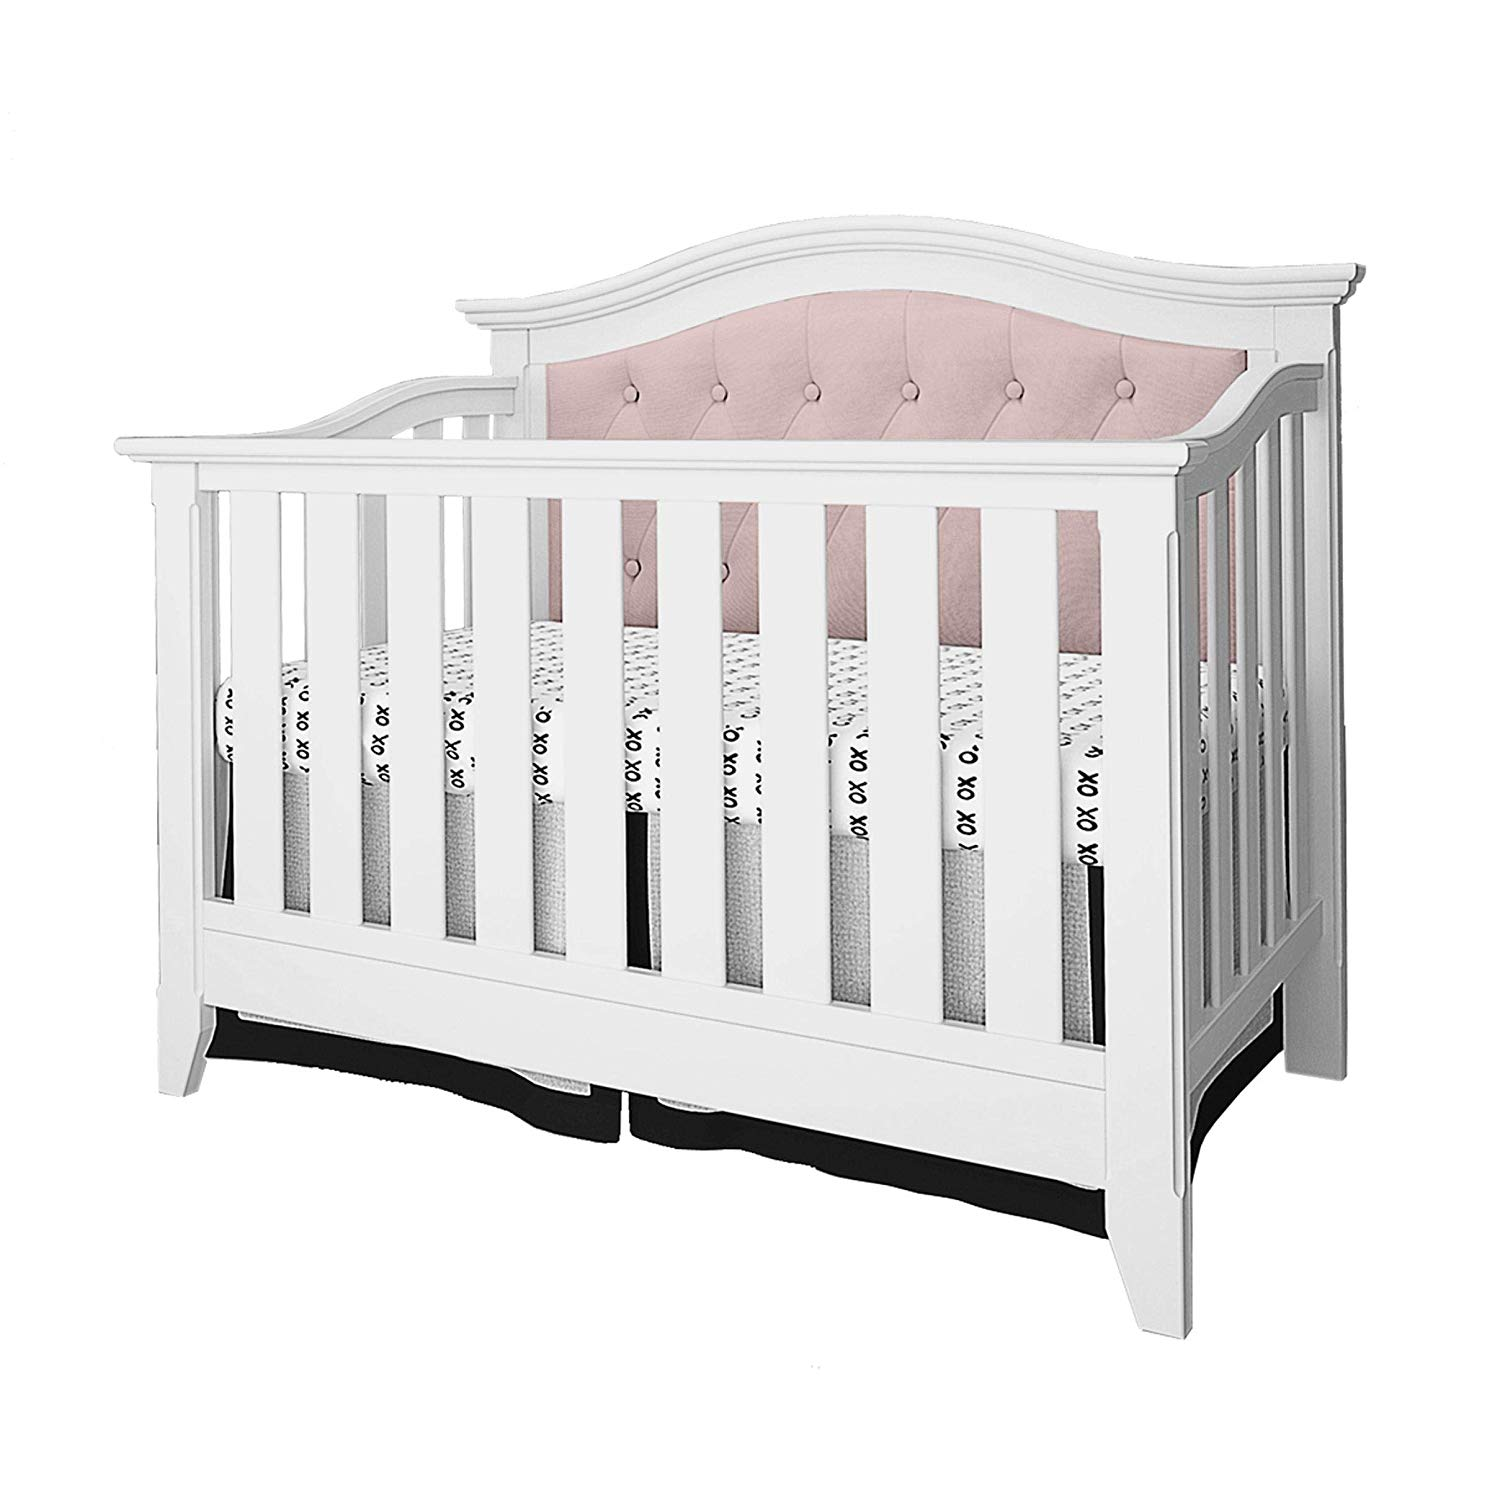 Belle Isle Furniture Magnolia Upholstered 4-in-1 Convertible Crib White/Pink Linen